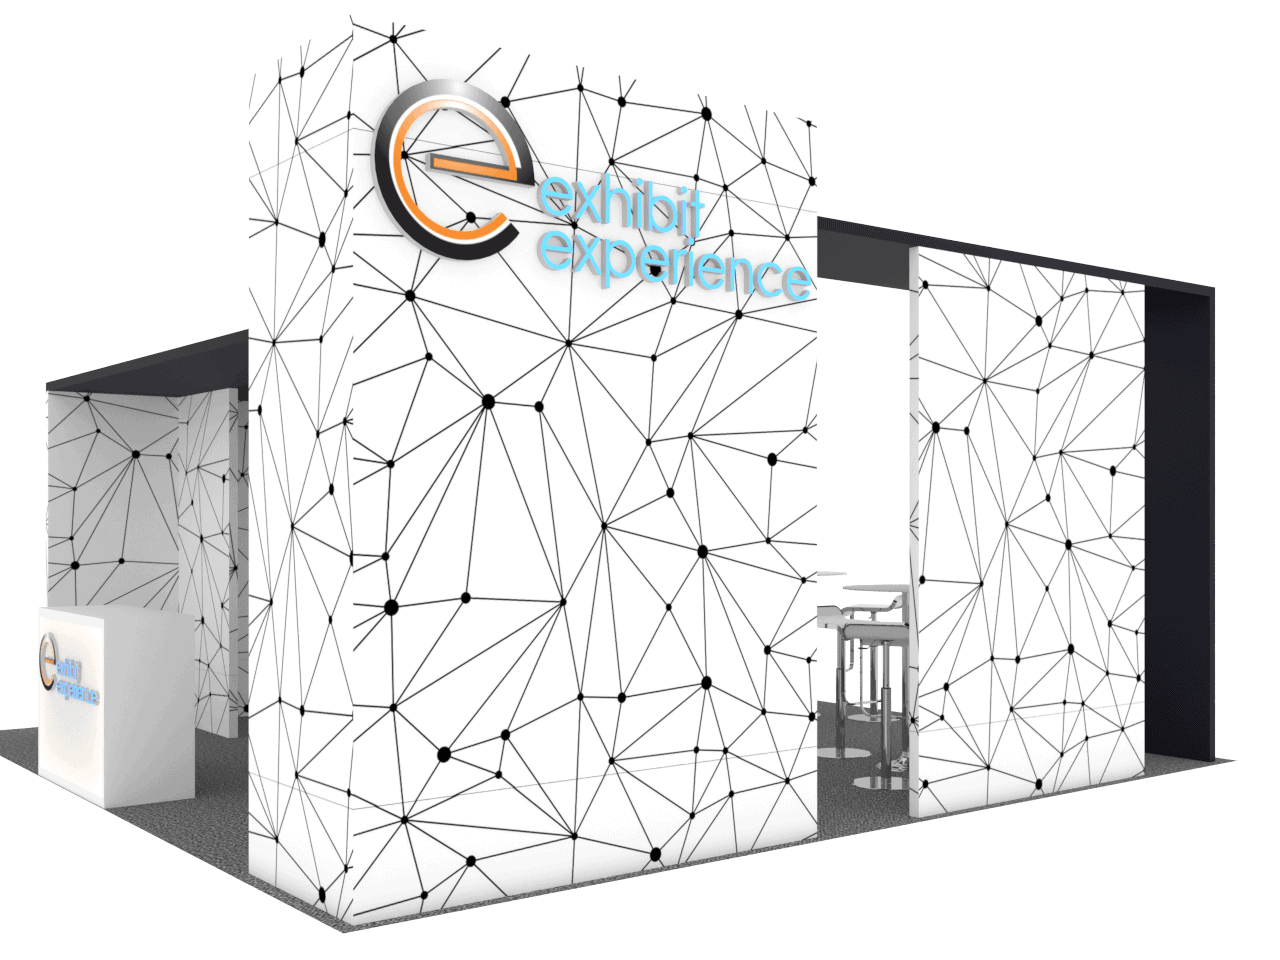 20 x 20 railway interchange 2019 Expo booth rental